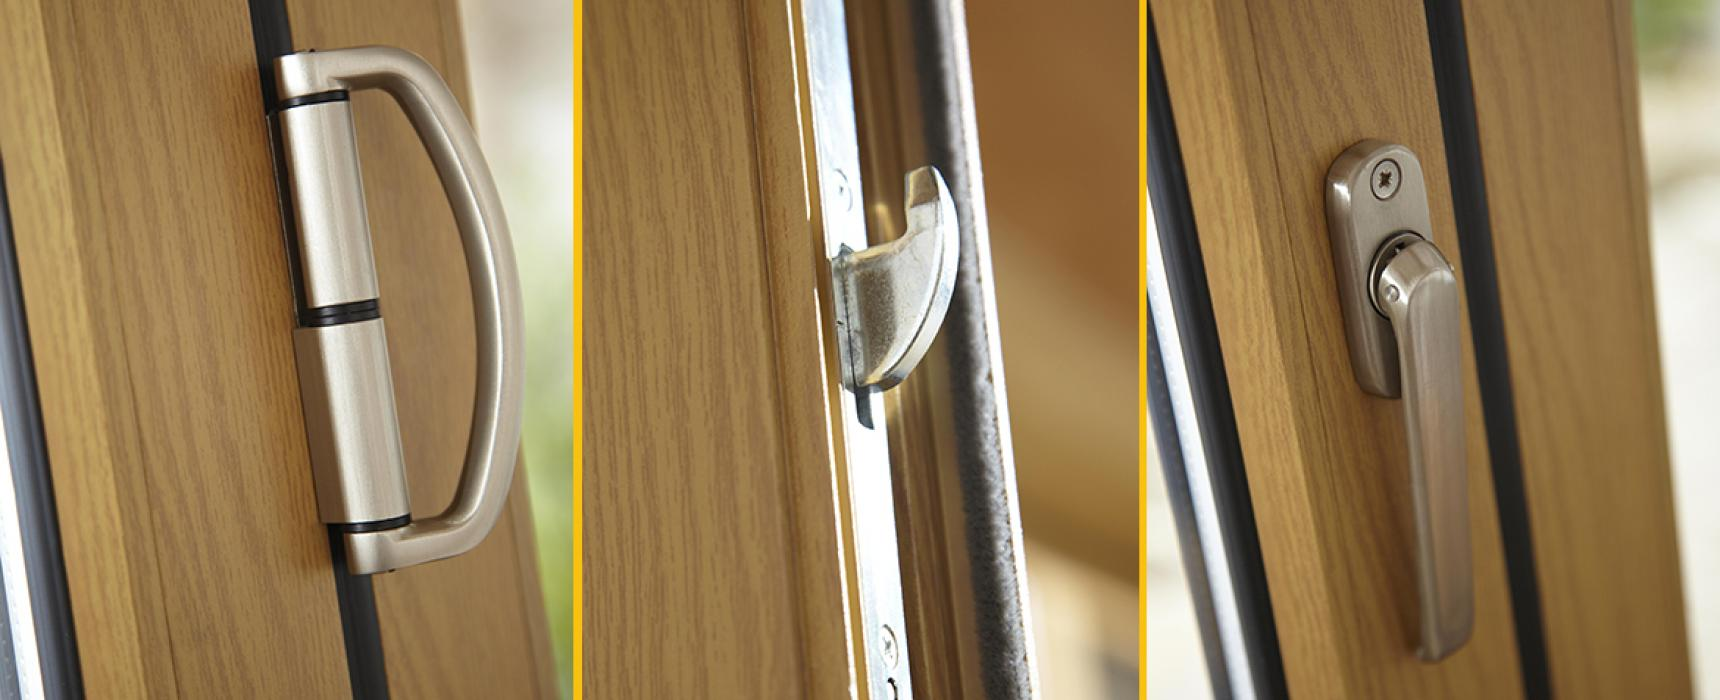 Origin hardware, handle, on a wood grain effect aluminium bi-folding door